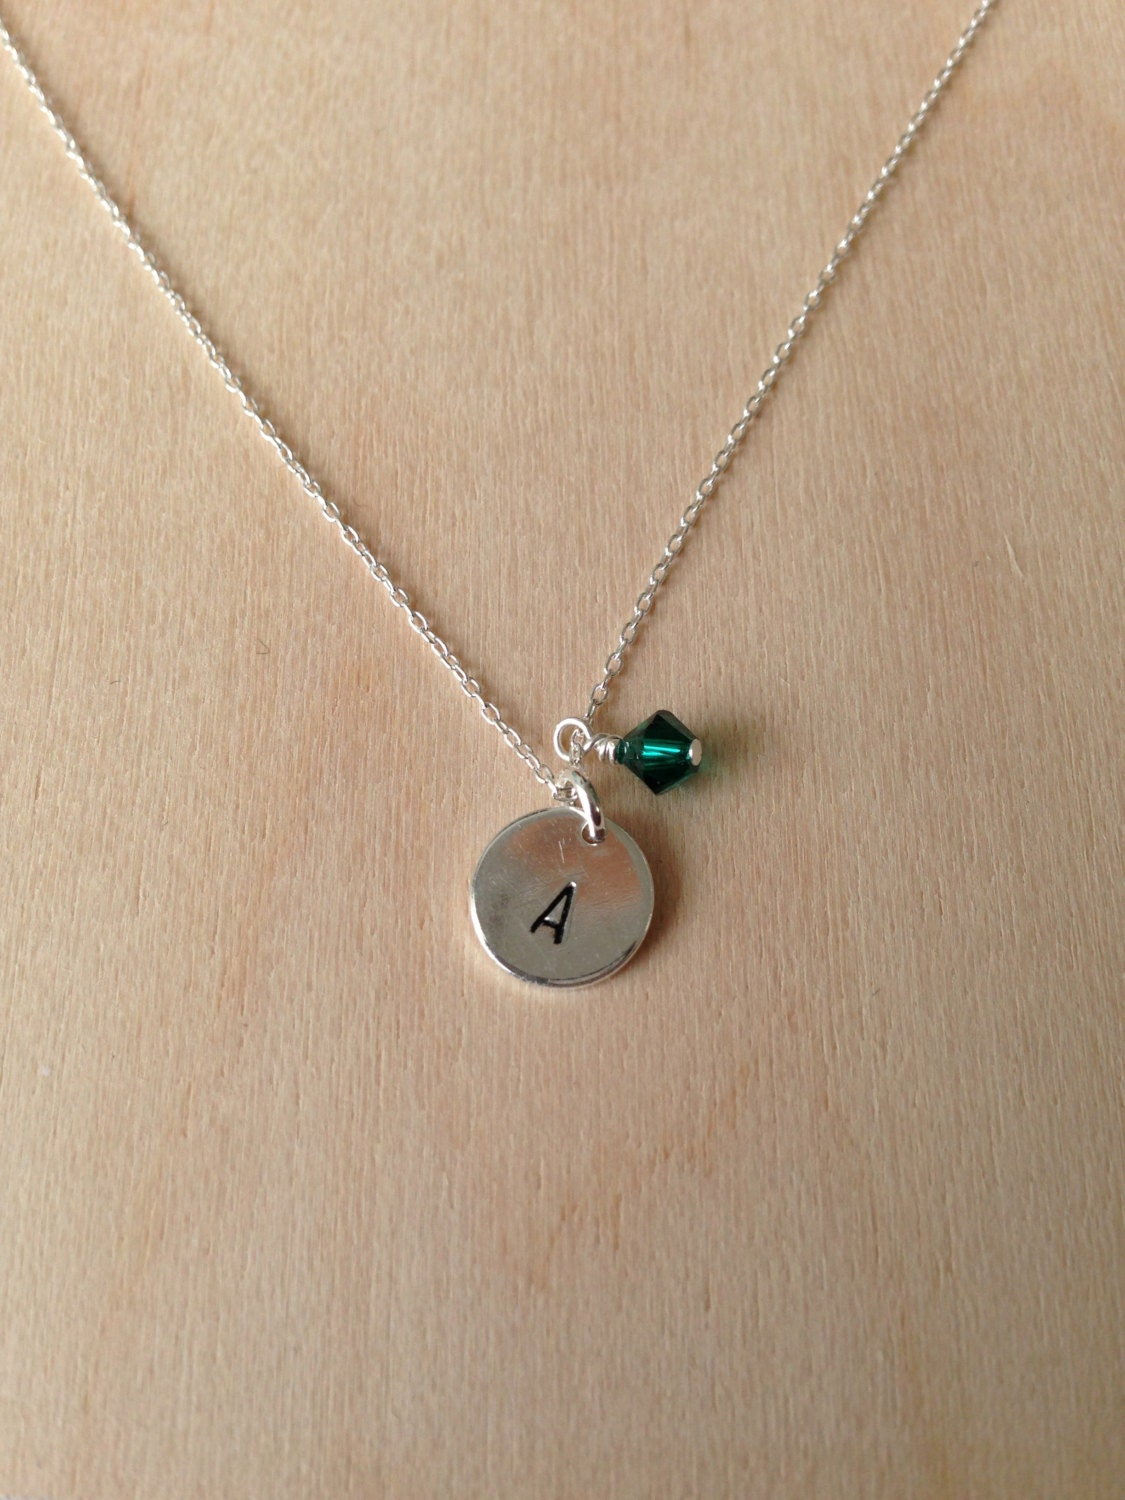 Tiny Sterling Silver Monogram Necklace Initial Necklace Sterling Silver Round Charm Birthstone